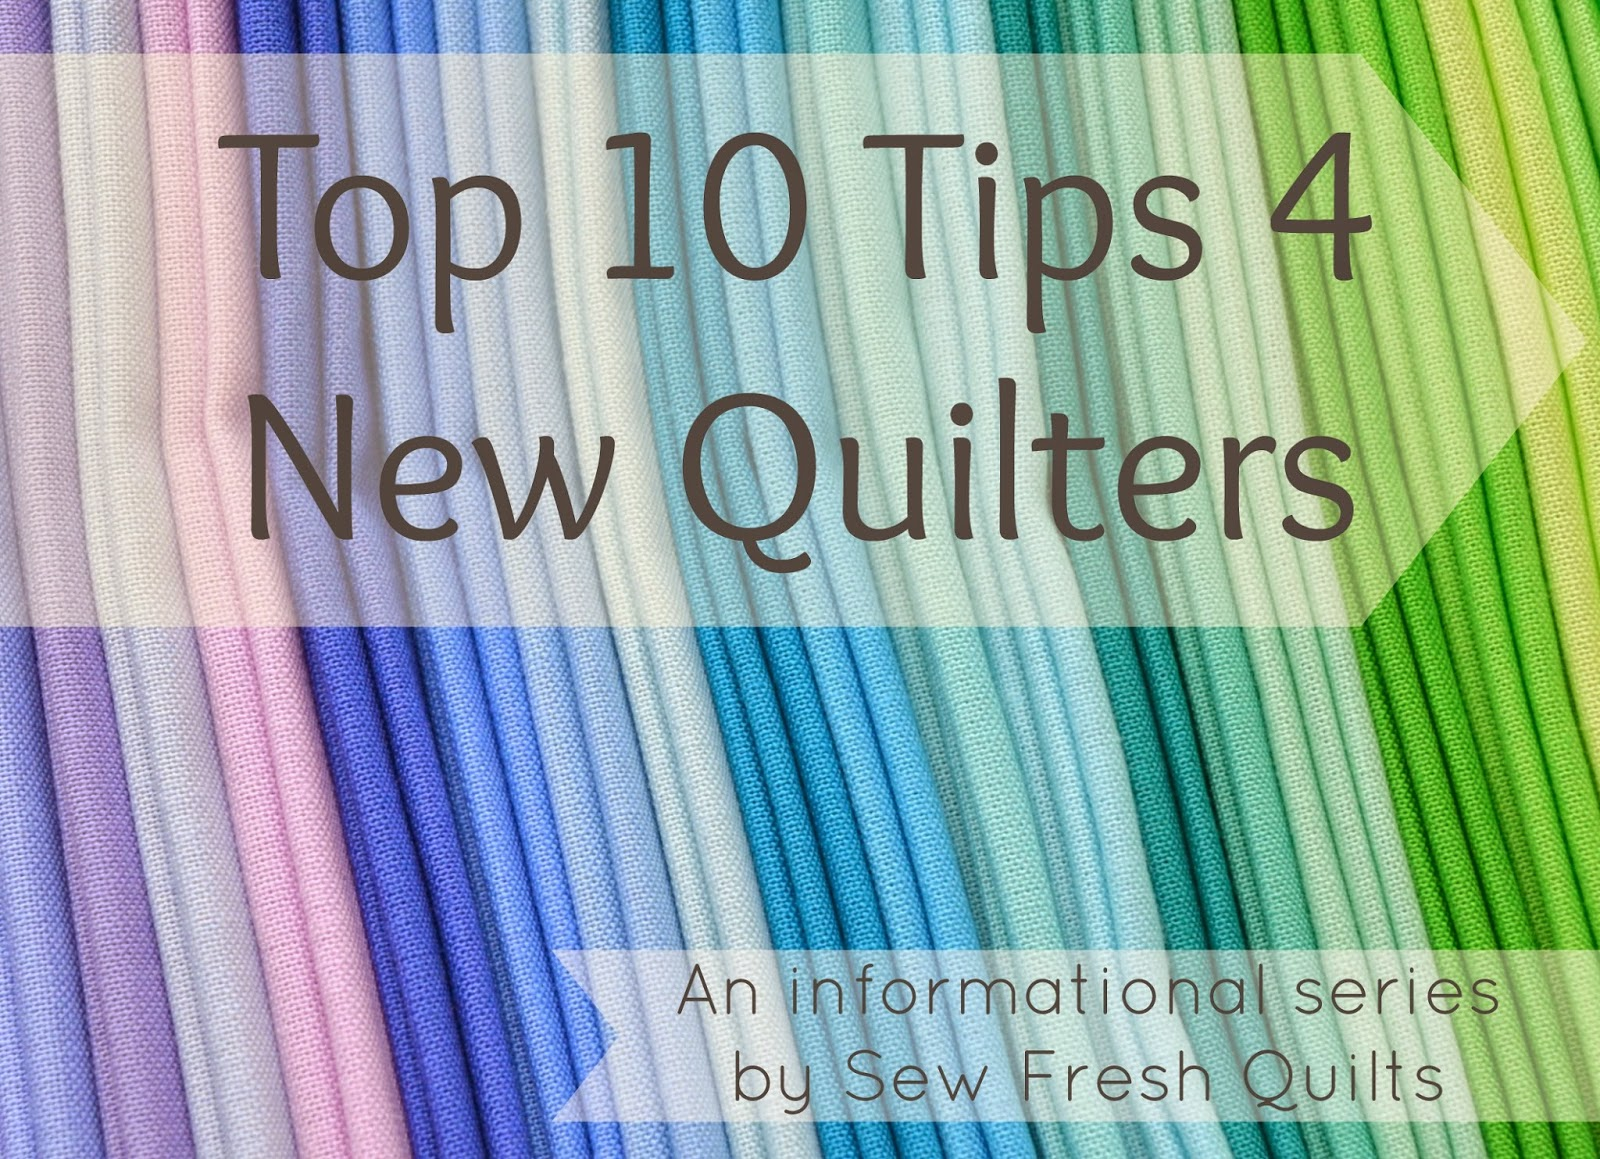 Top 10 Tips for New Quilters series